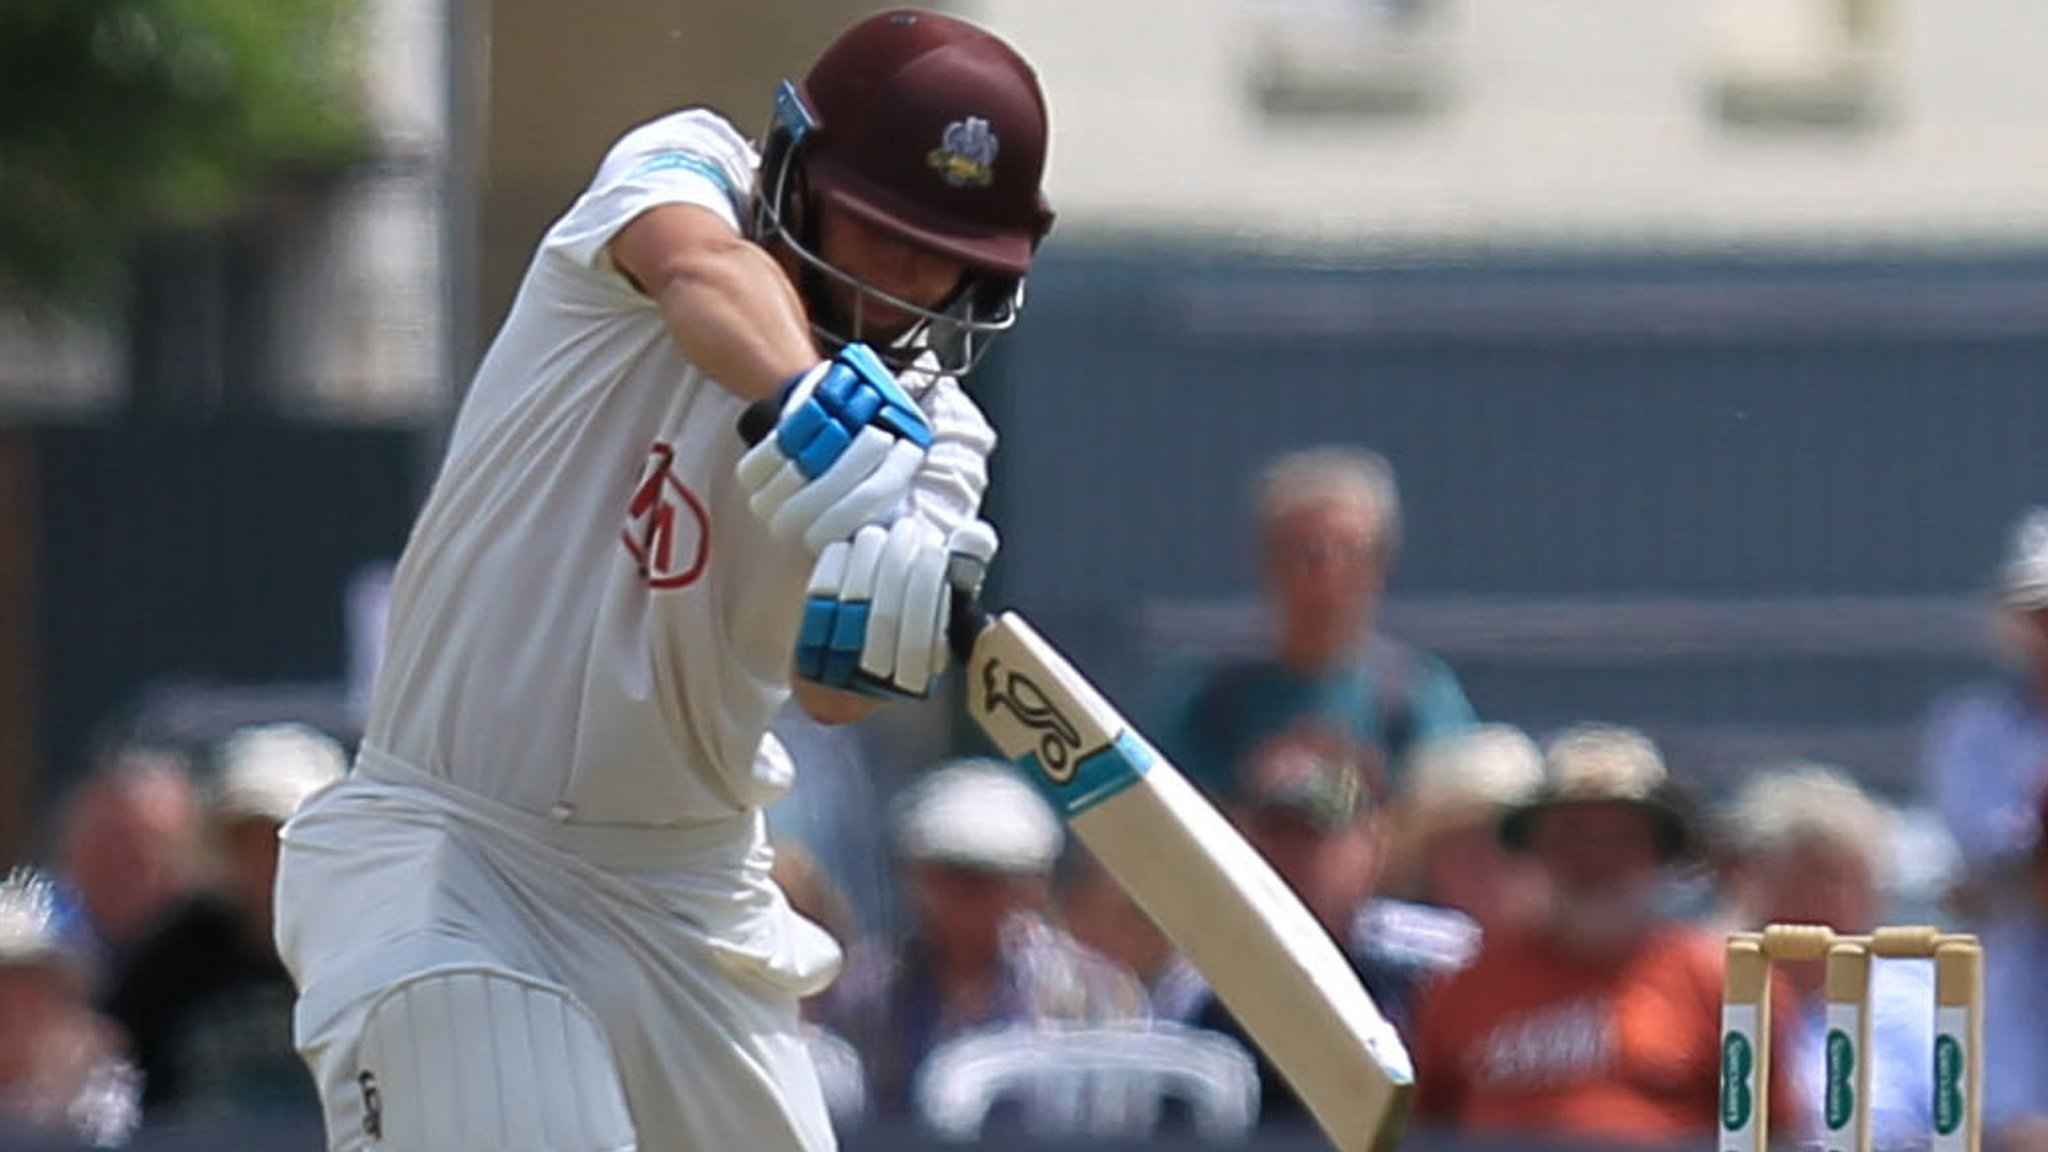 County Championship: Surrey make good start against Somerset